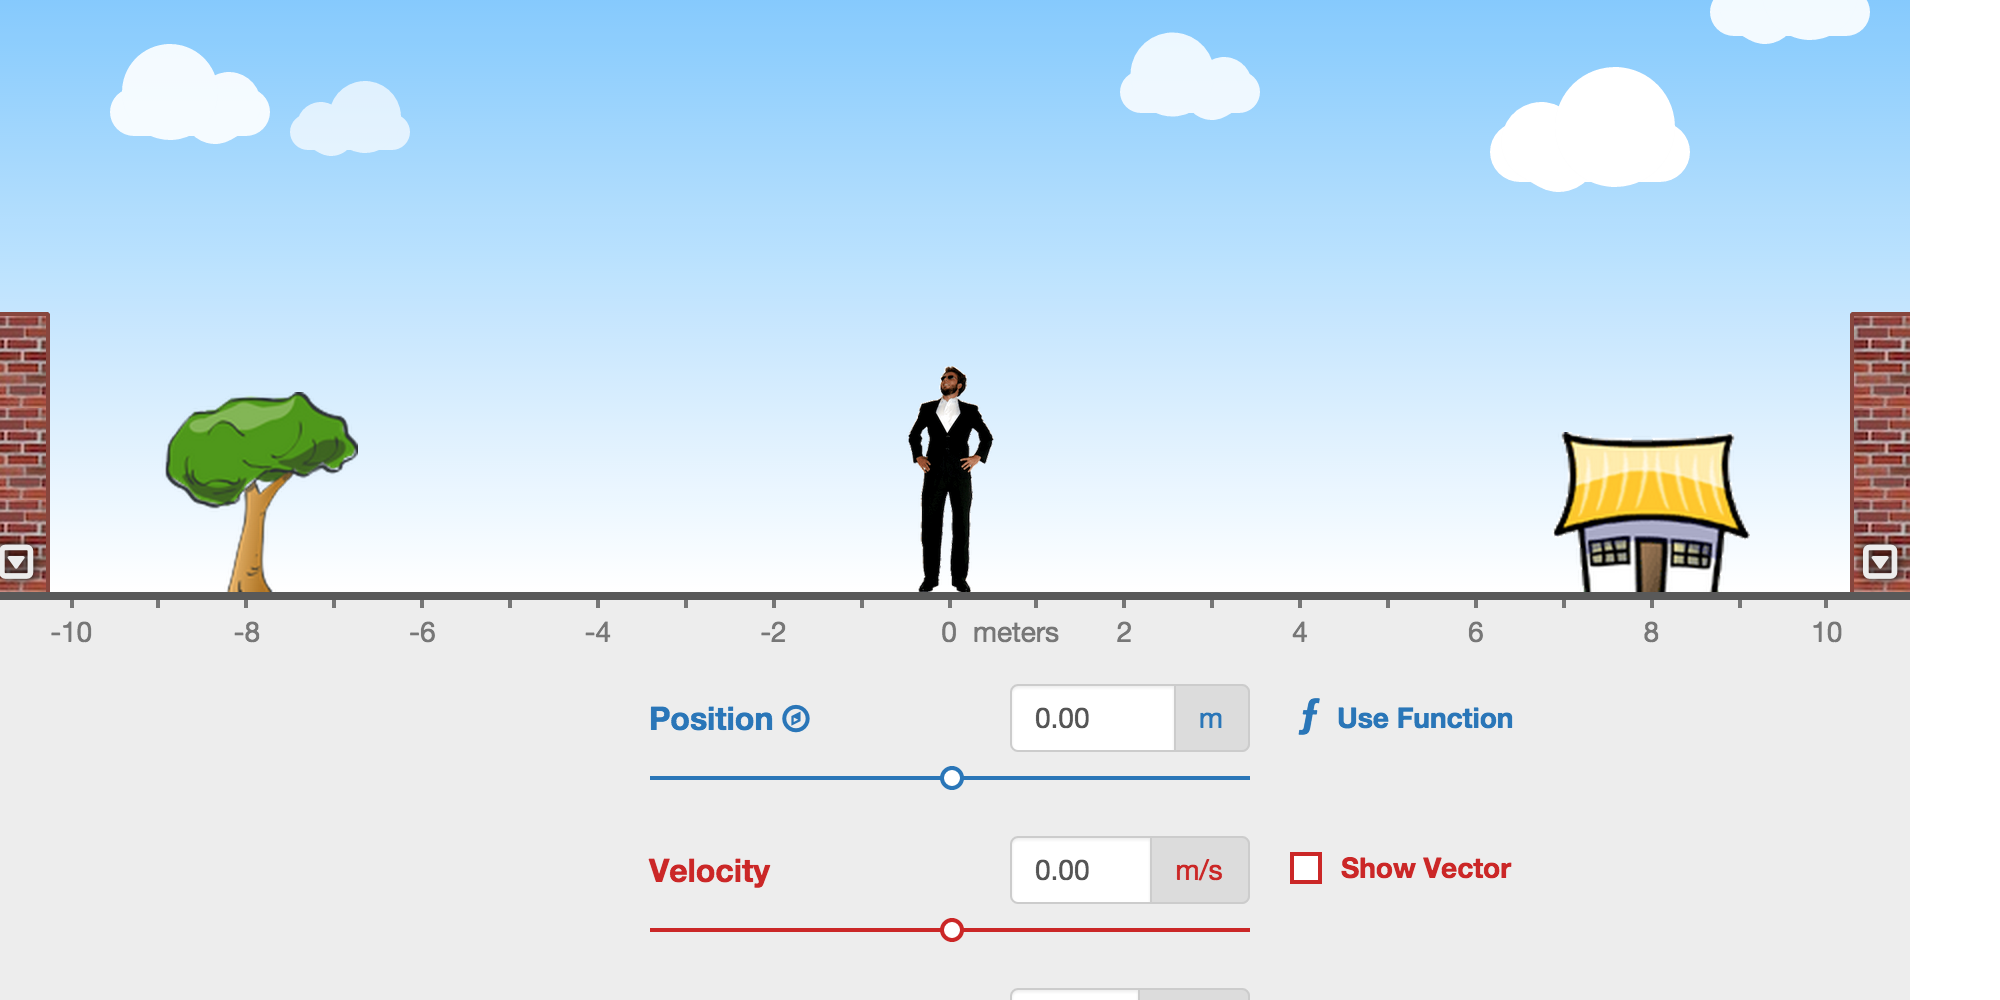 This simulation allows you to move a man back and forth and plot his motion to learn about position, velocity, and acceleration.